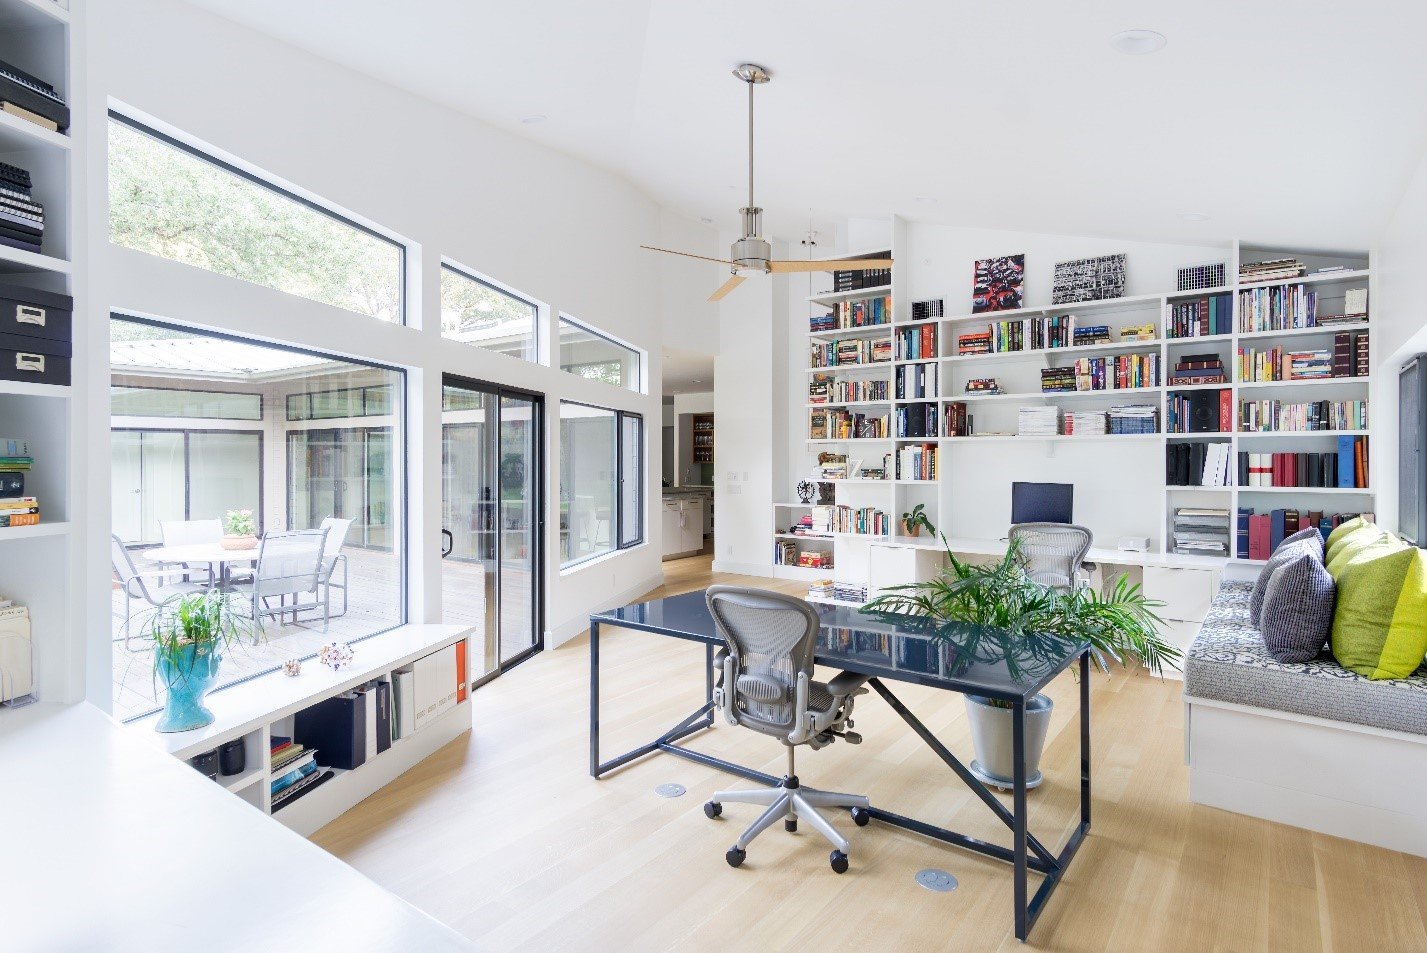 Interior of renovated home including office space.